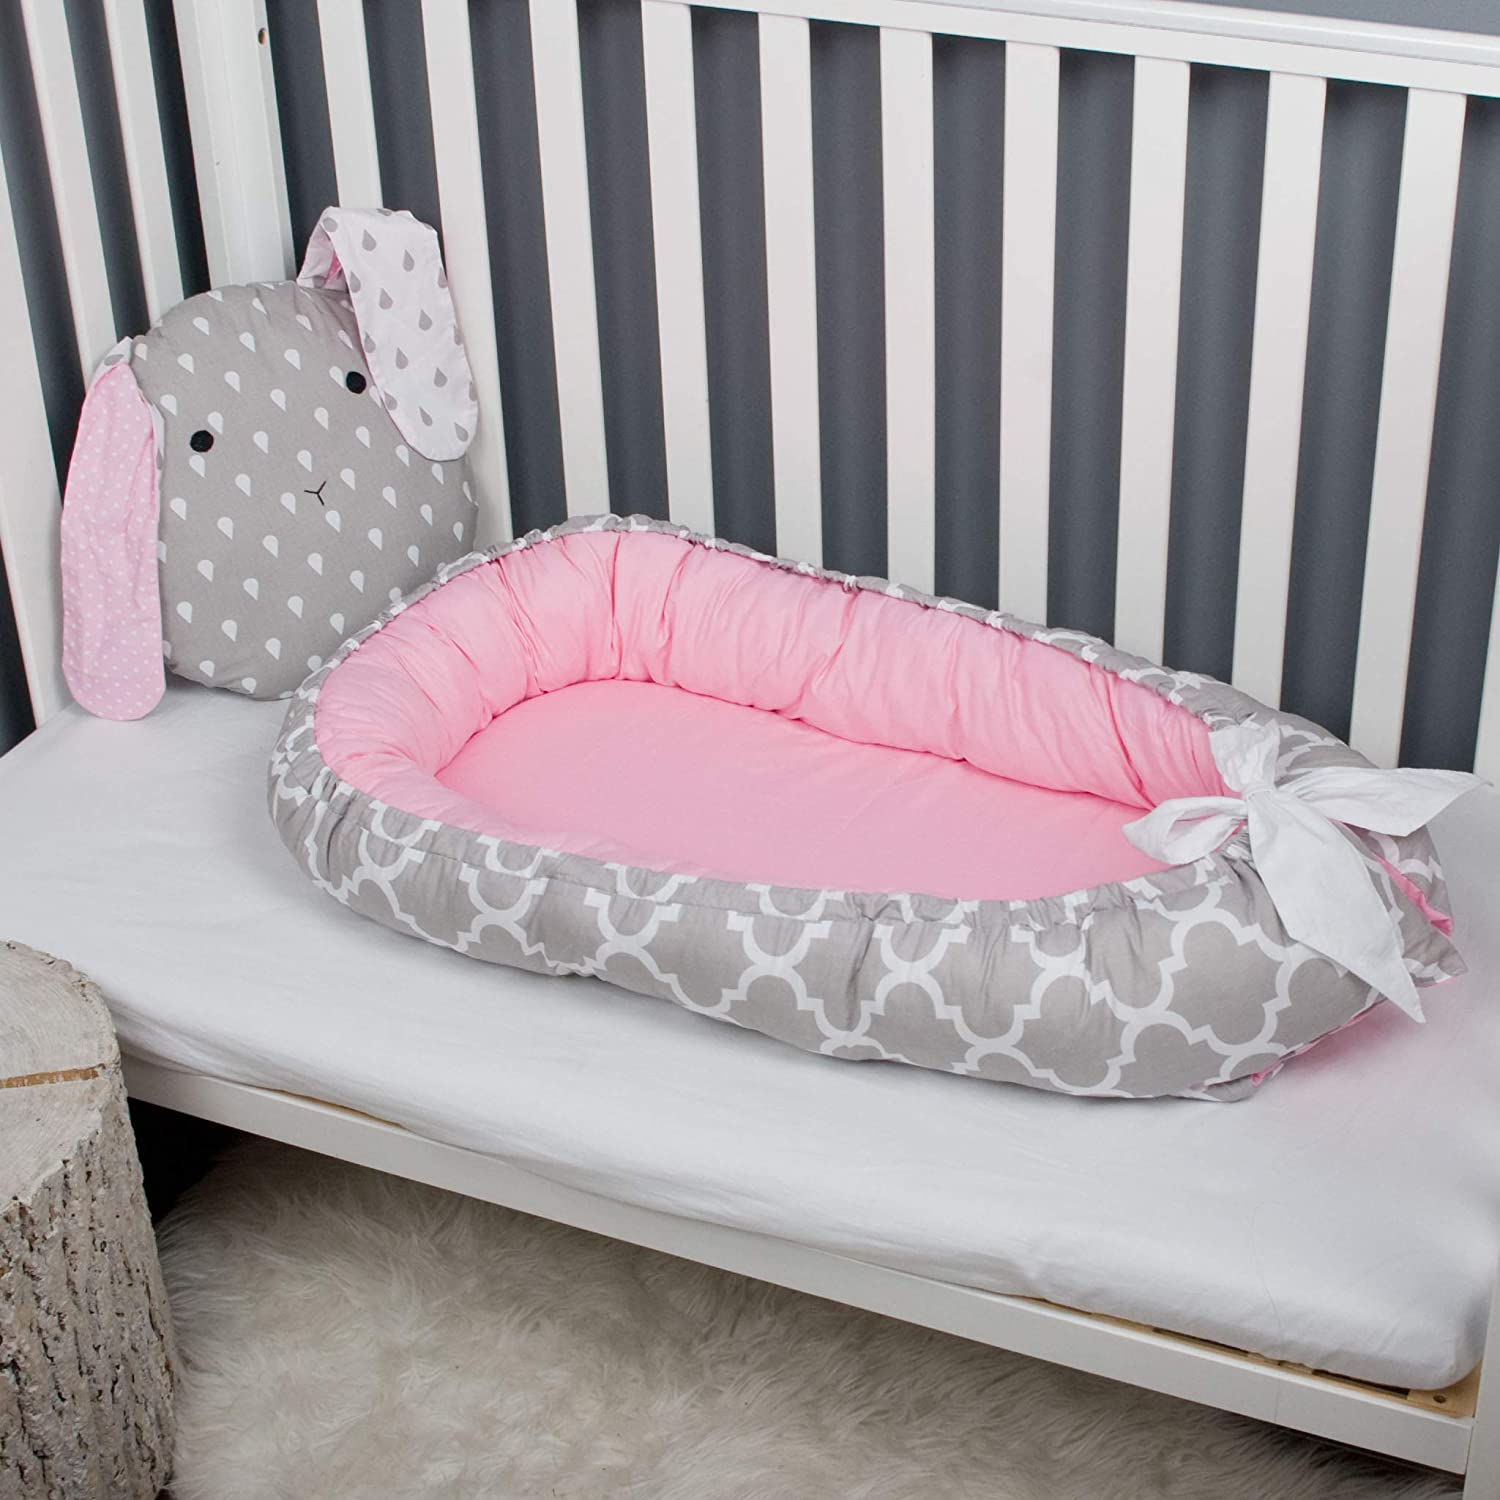 Baby nest bed or Toddler size nest, cocoon portable crib lounger baby bassinet co sleeper babynest babynest bed travel pad pod for newborn